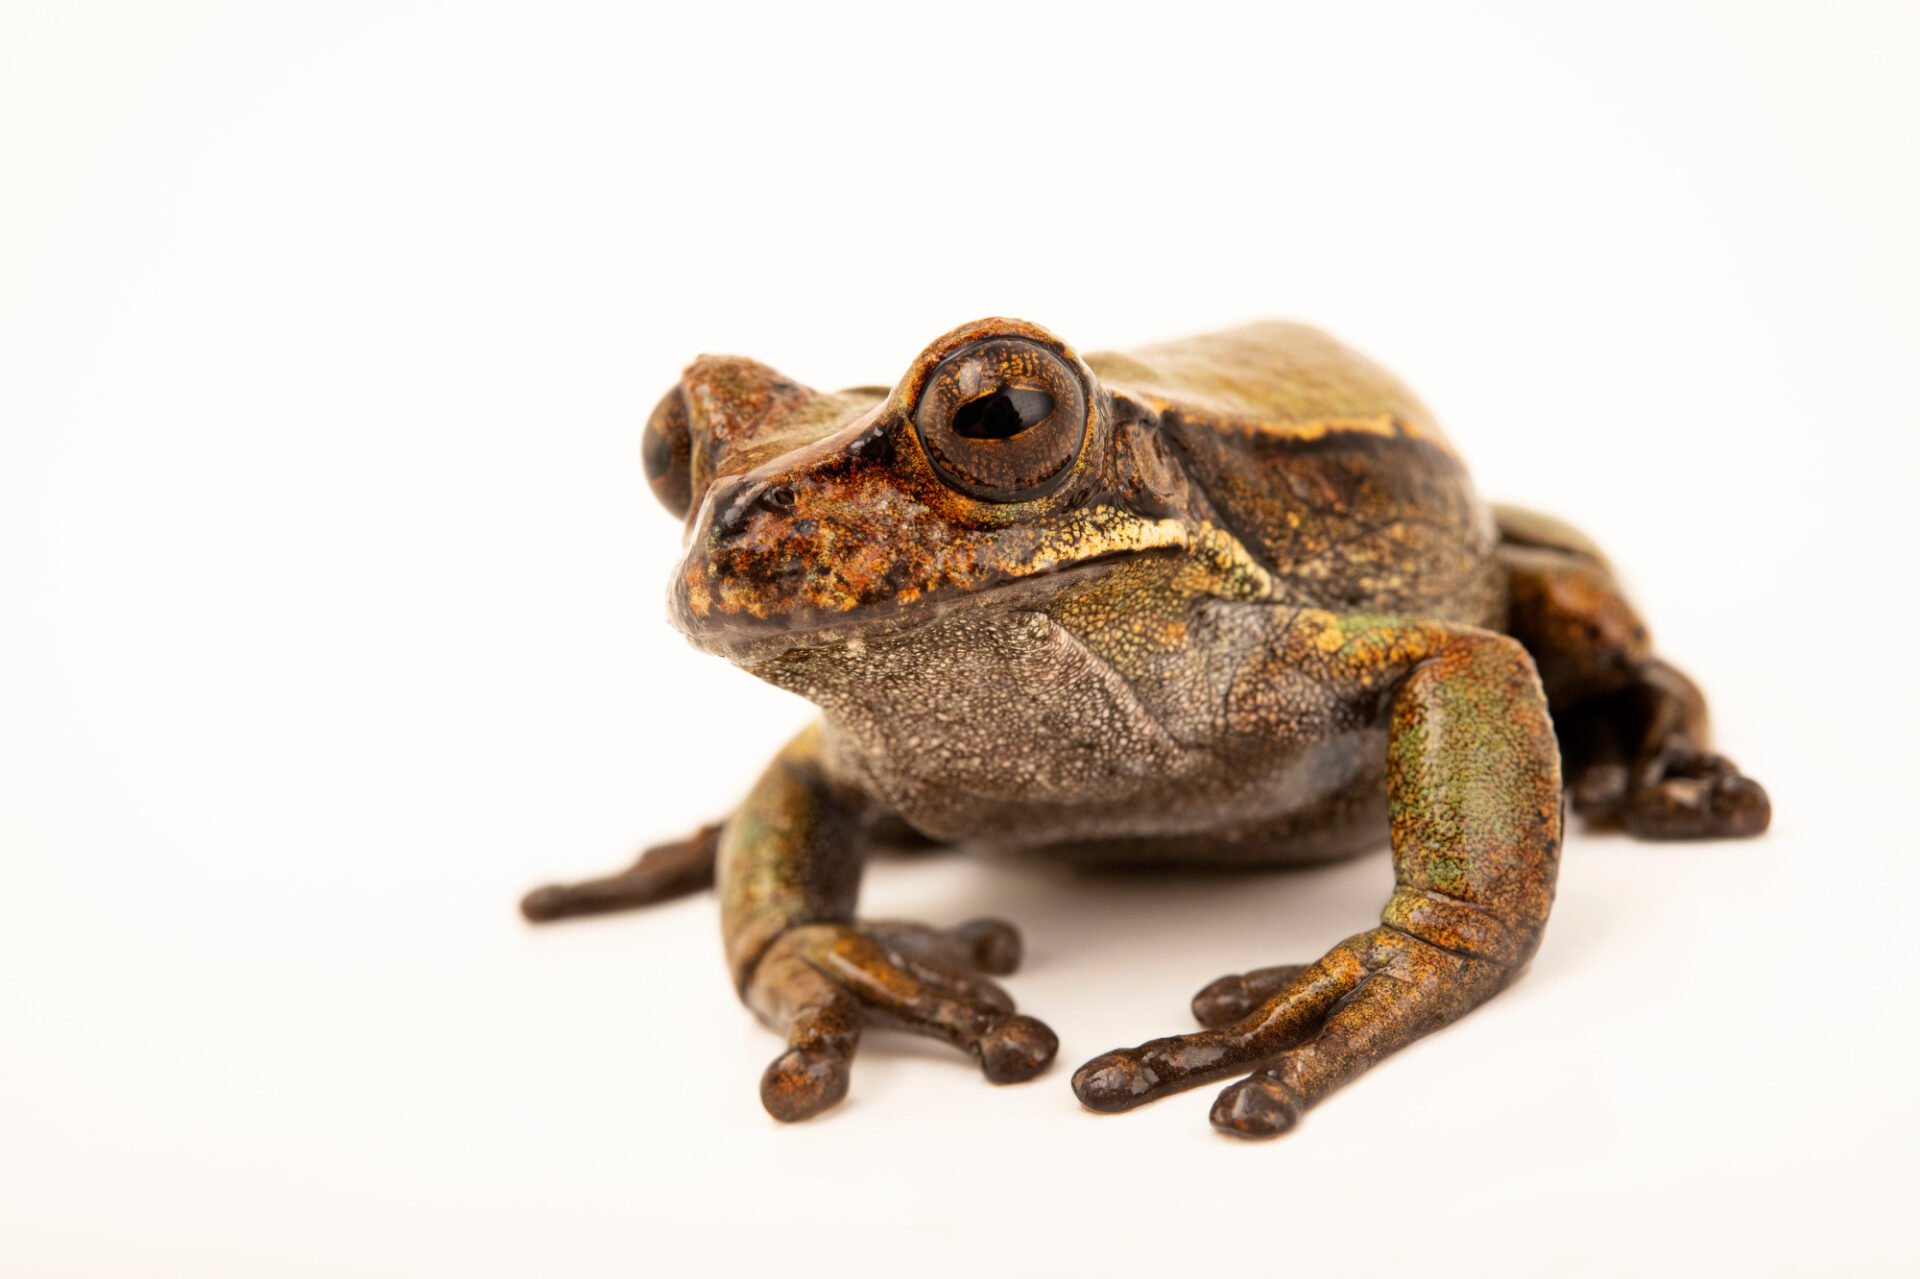 Photo: An undescribed, male, marsupial frog (Gastrotheca sp.1 compadre) at Balsa de los Sapos.